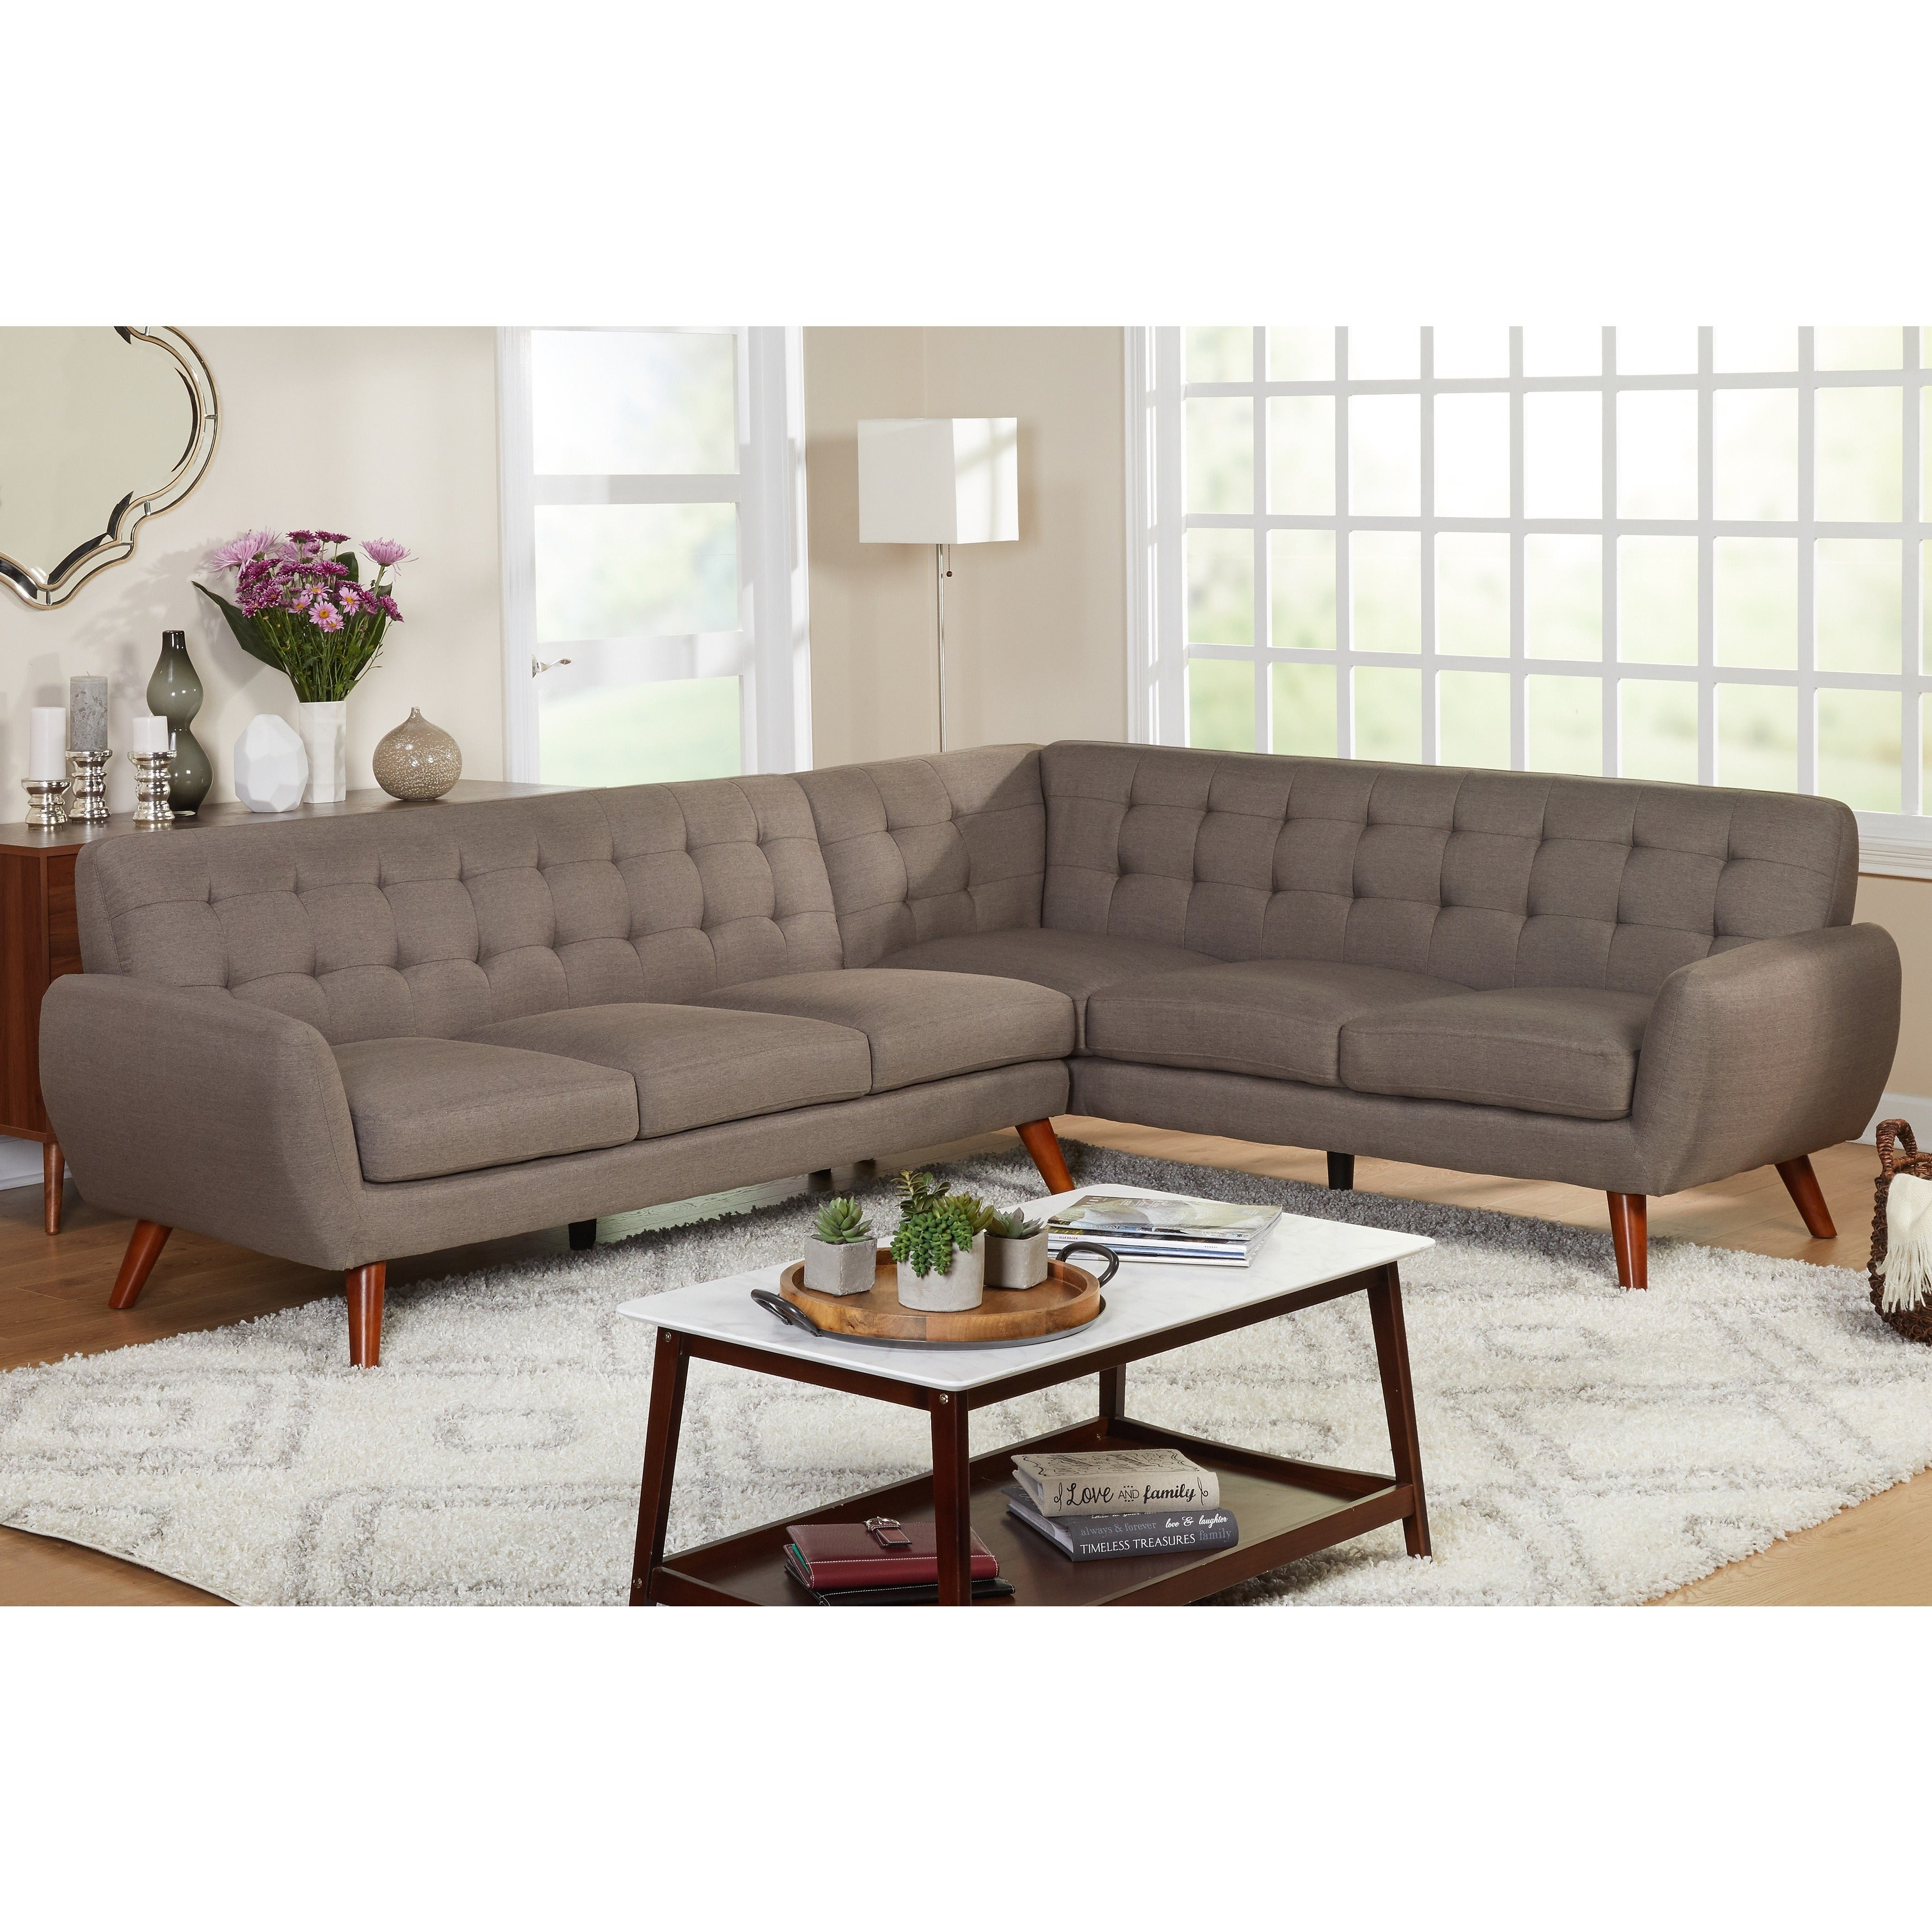 Shop Simple Living Livingston Mid-Century Tufted L-shaped Sectional ...